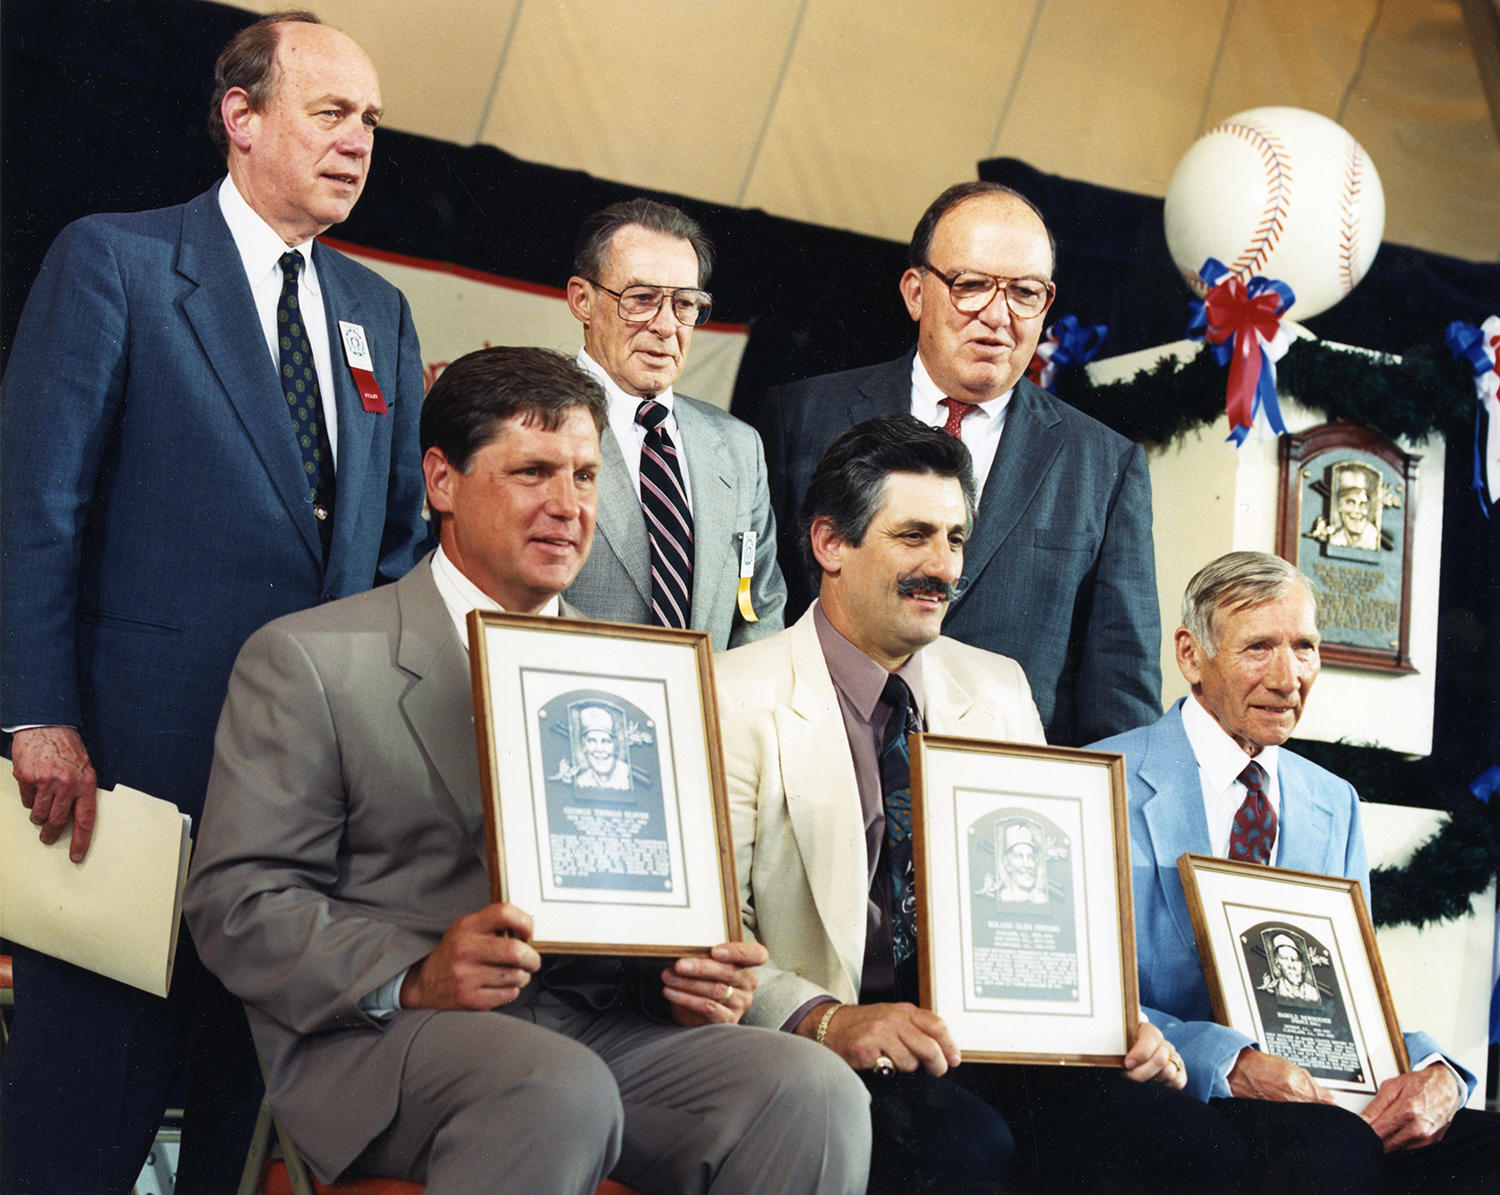 (Bottom row, from left to right): Tom Seaver, Rollie Fingers and Hal Newhouser pose with images of their bronze plaques following the 1992 <em>Induction Ceremony</em>. In the top row, (from left to right) are Chairman of the Board Ed Stack, Bill McGowan Jr. and Commissioner Fay Vincent. (Milo Stewart Jr. / National Baseball Hall of Fame and Museum)